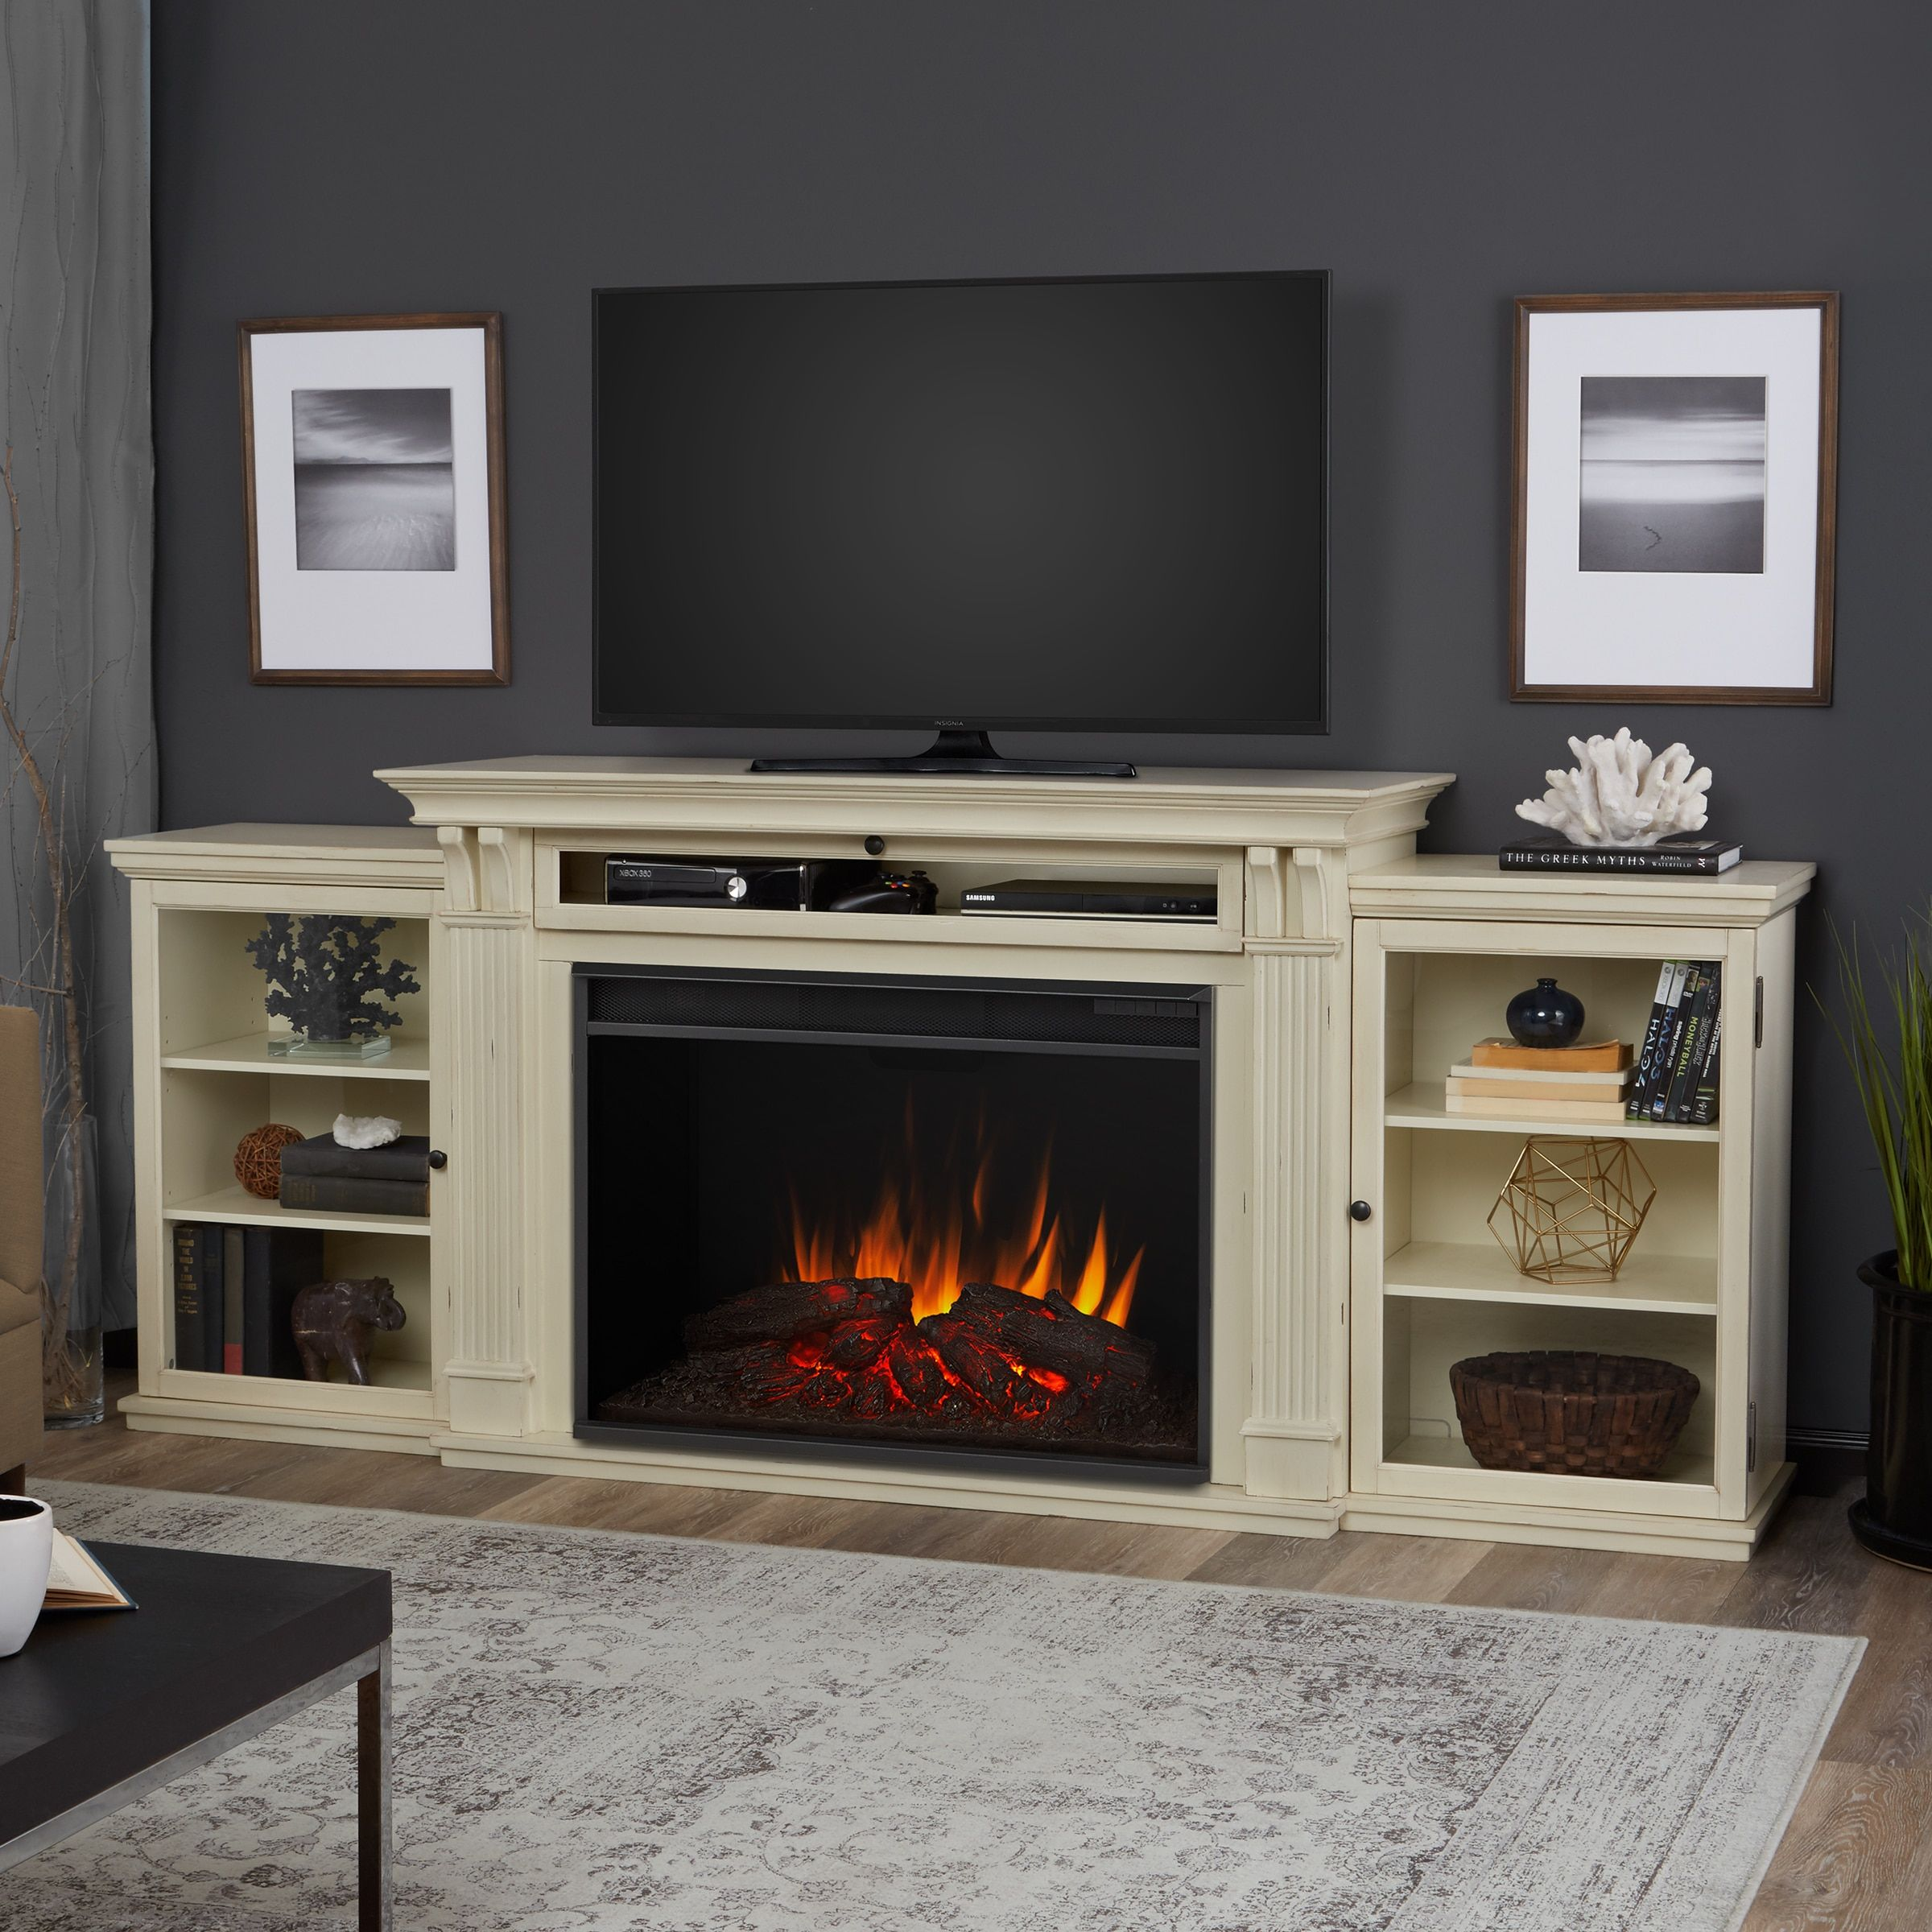 entertainment stand soundbar fireplace then wooden media plus tv armchair base black blanket cheap console smart table excellent rug shelf side ga cabinet electric center doors glass attractive grey